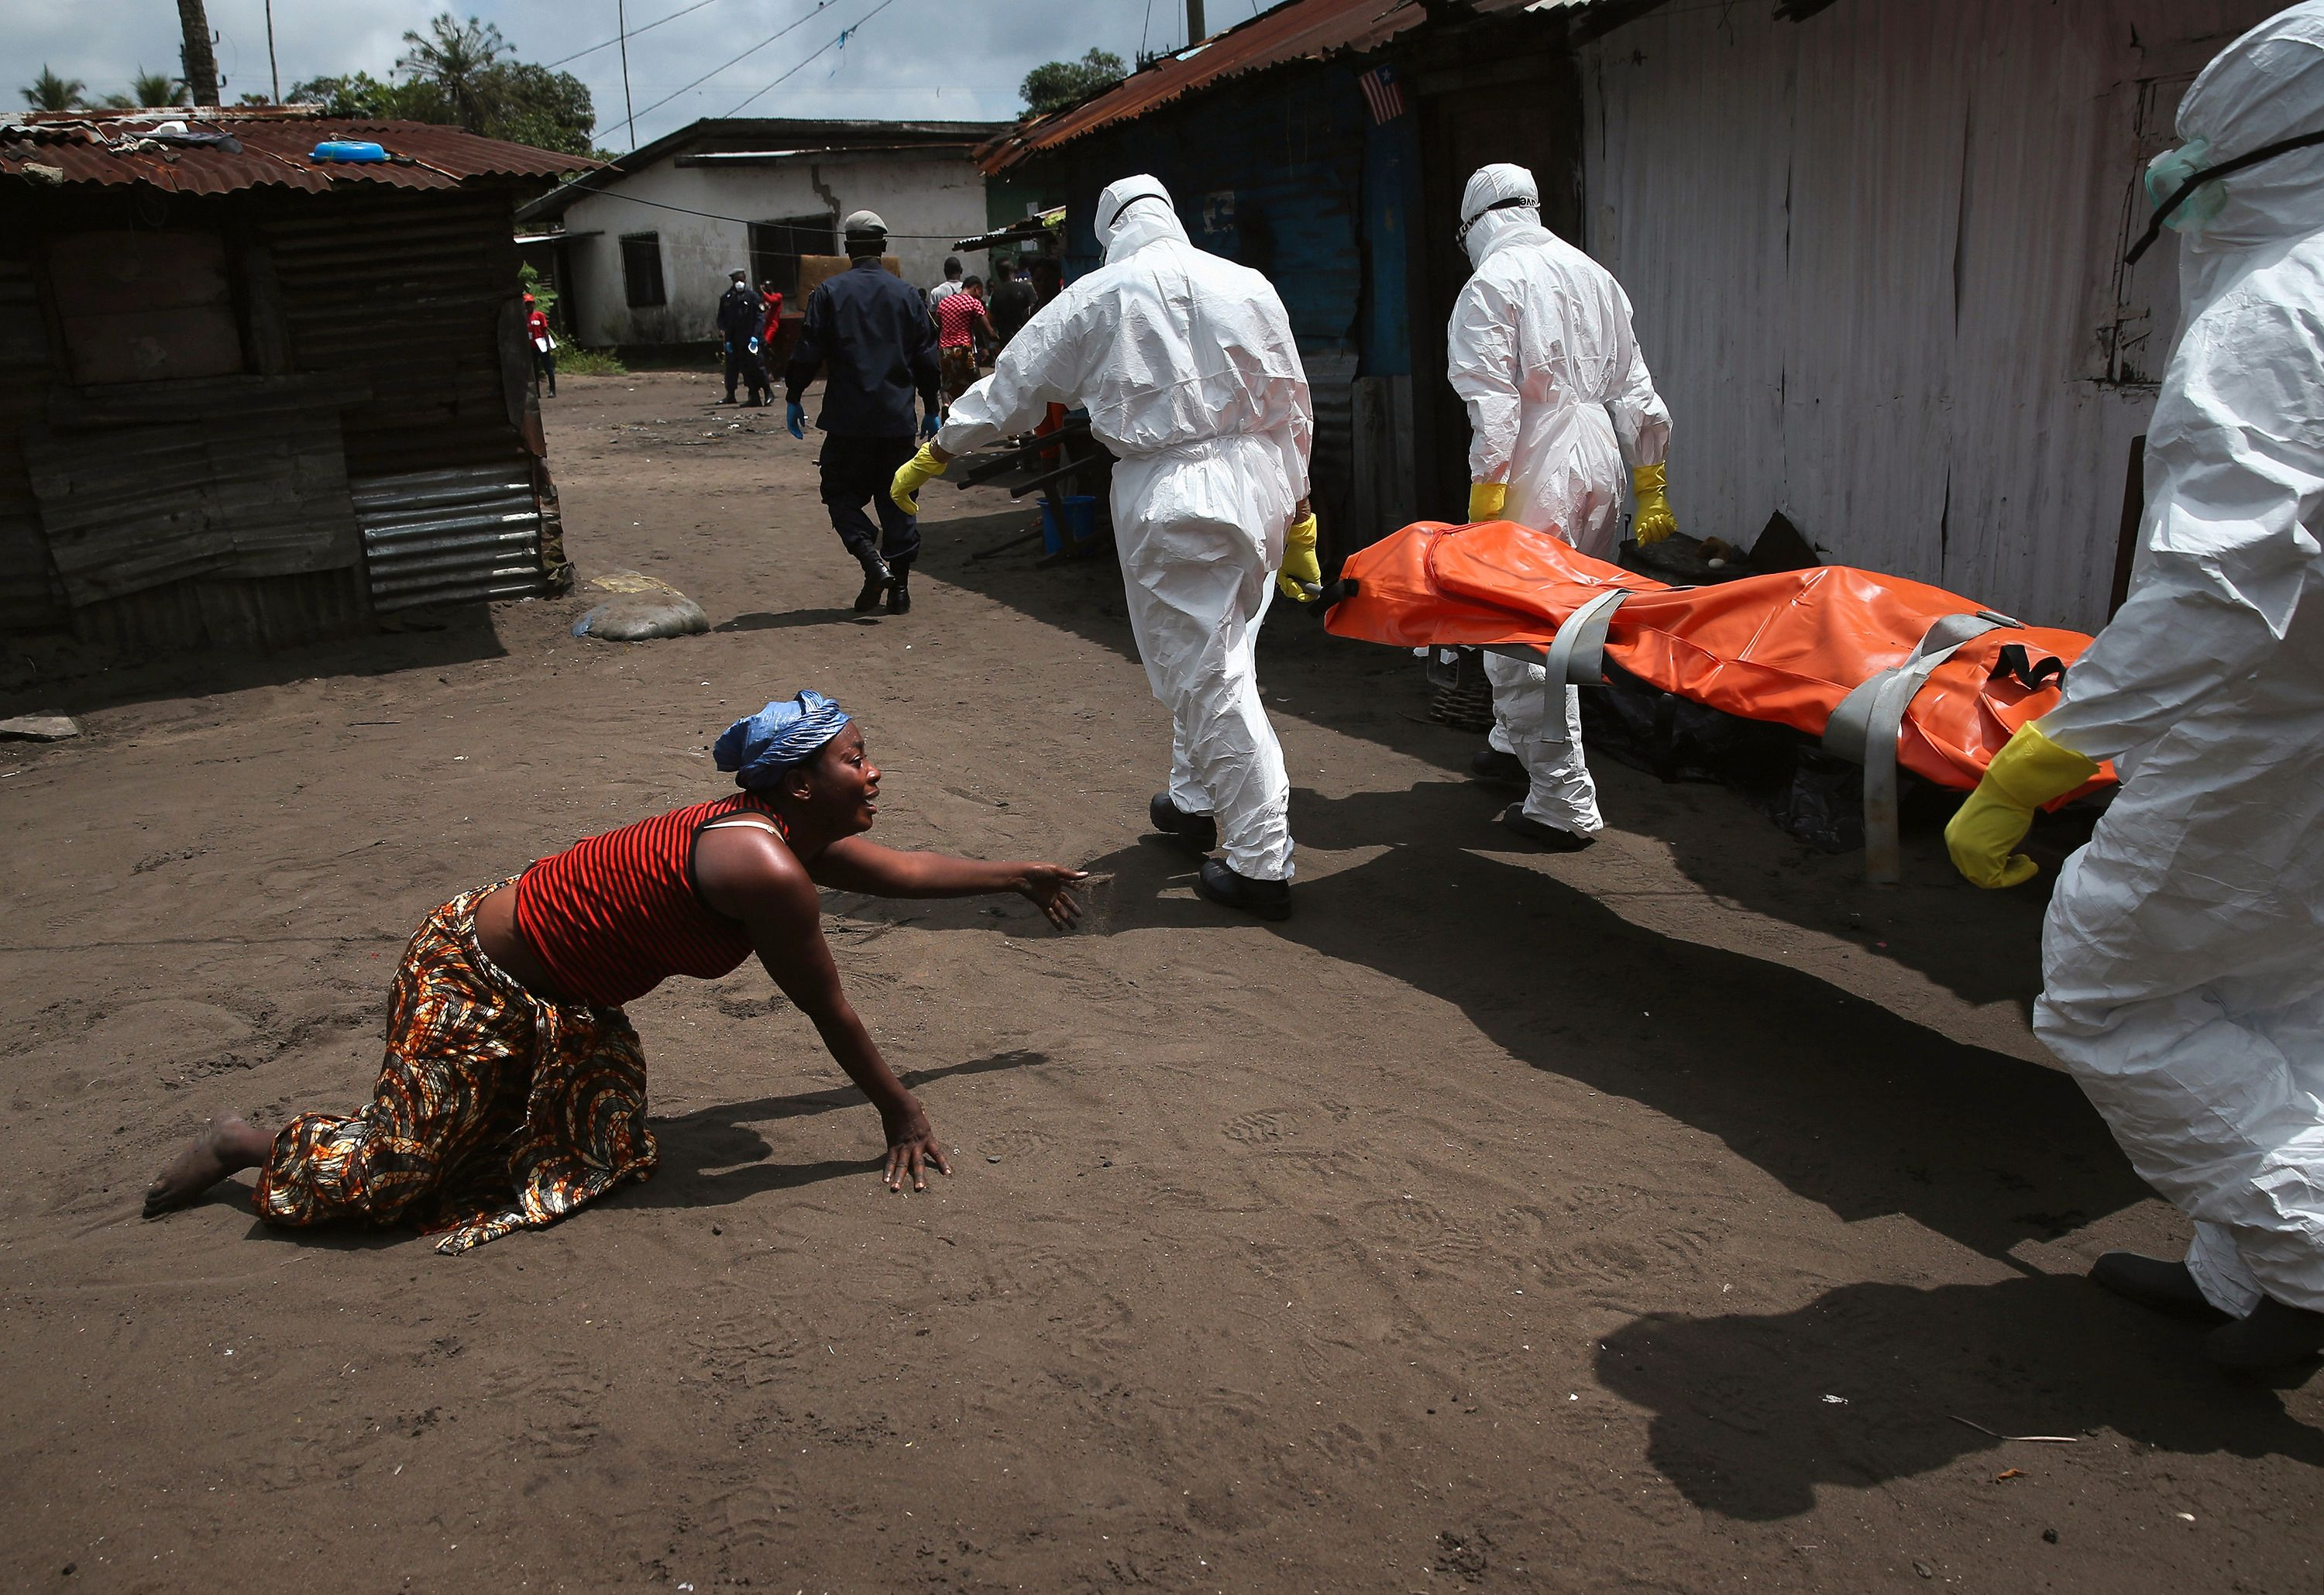 A woman crawls towards the body of her sister as Ebola burial team members take her for cremation on October 10, 2014 in Monrovia, Liberia. The woman had died outside her home earlier in the morning while trying to walk to a treatment center, according to her relatives. The burial of loved ones is important in Liberian culture, making the removal of infected bodies for cremation all the more traumatic for surviving family members. Foto: John Moore / Getty Images, United States, Shortlist, Current Affairs, Professional Competition, 2015 Sony World Photography Awards